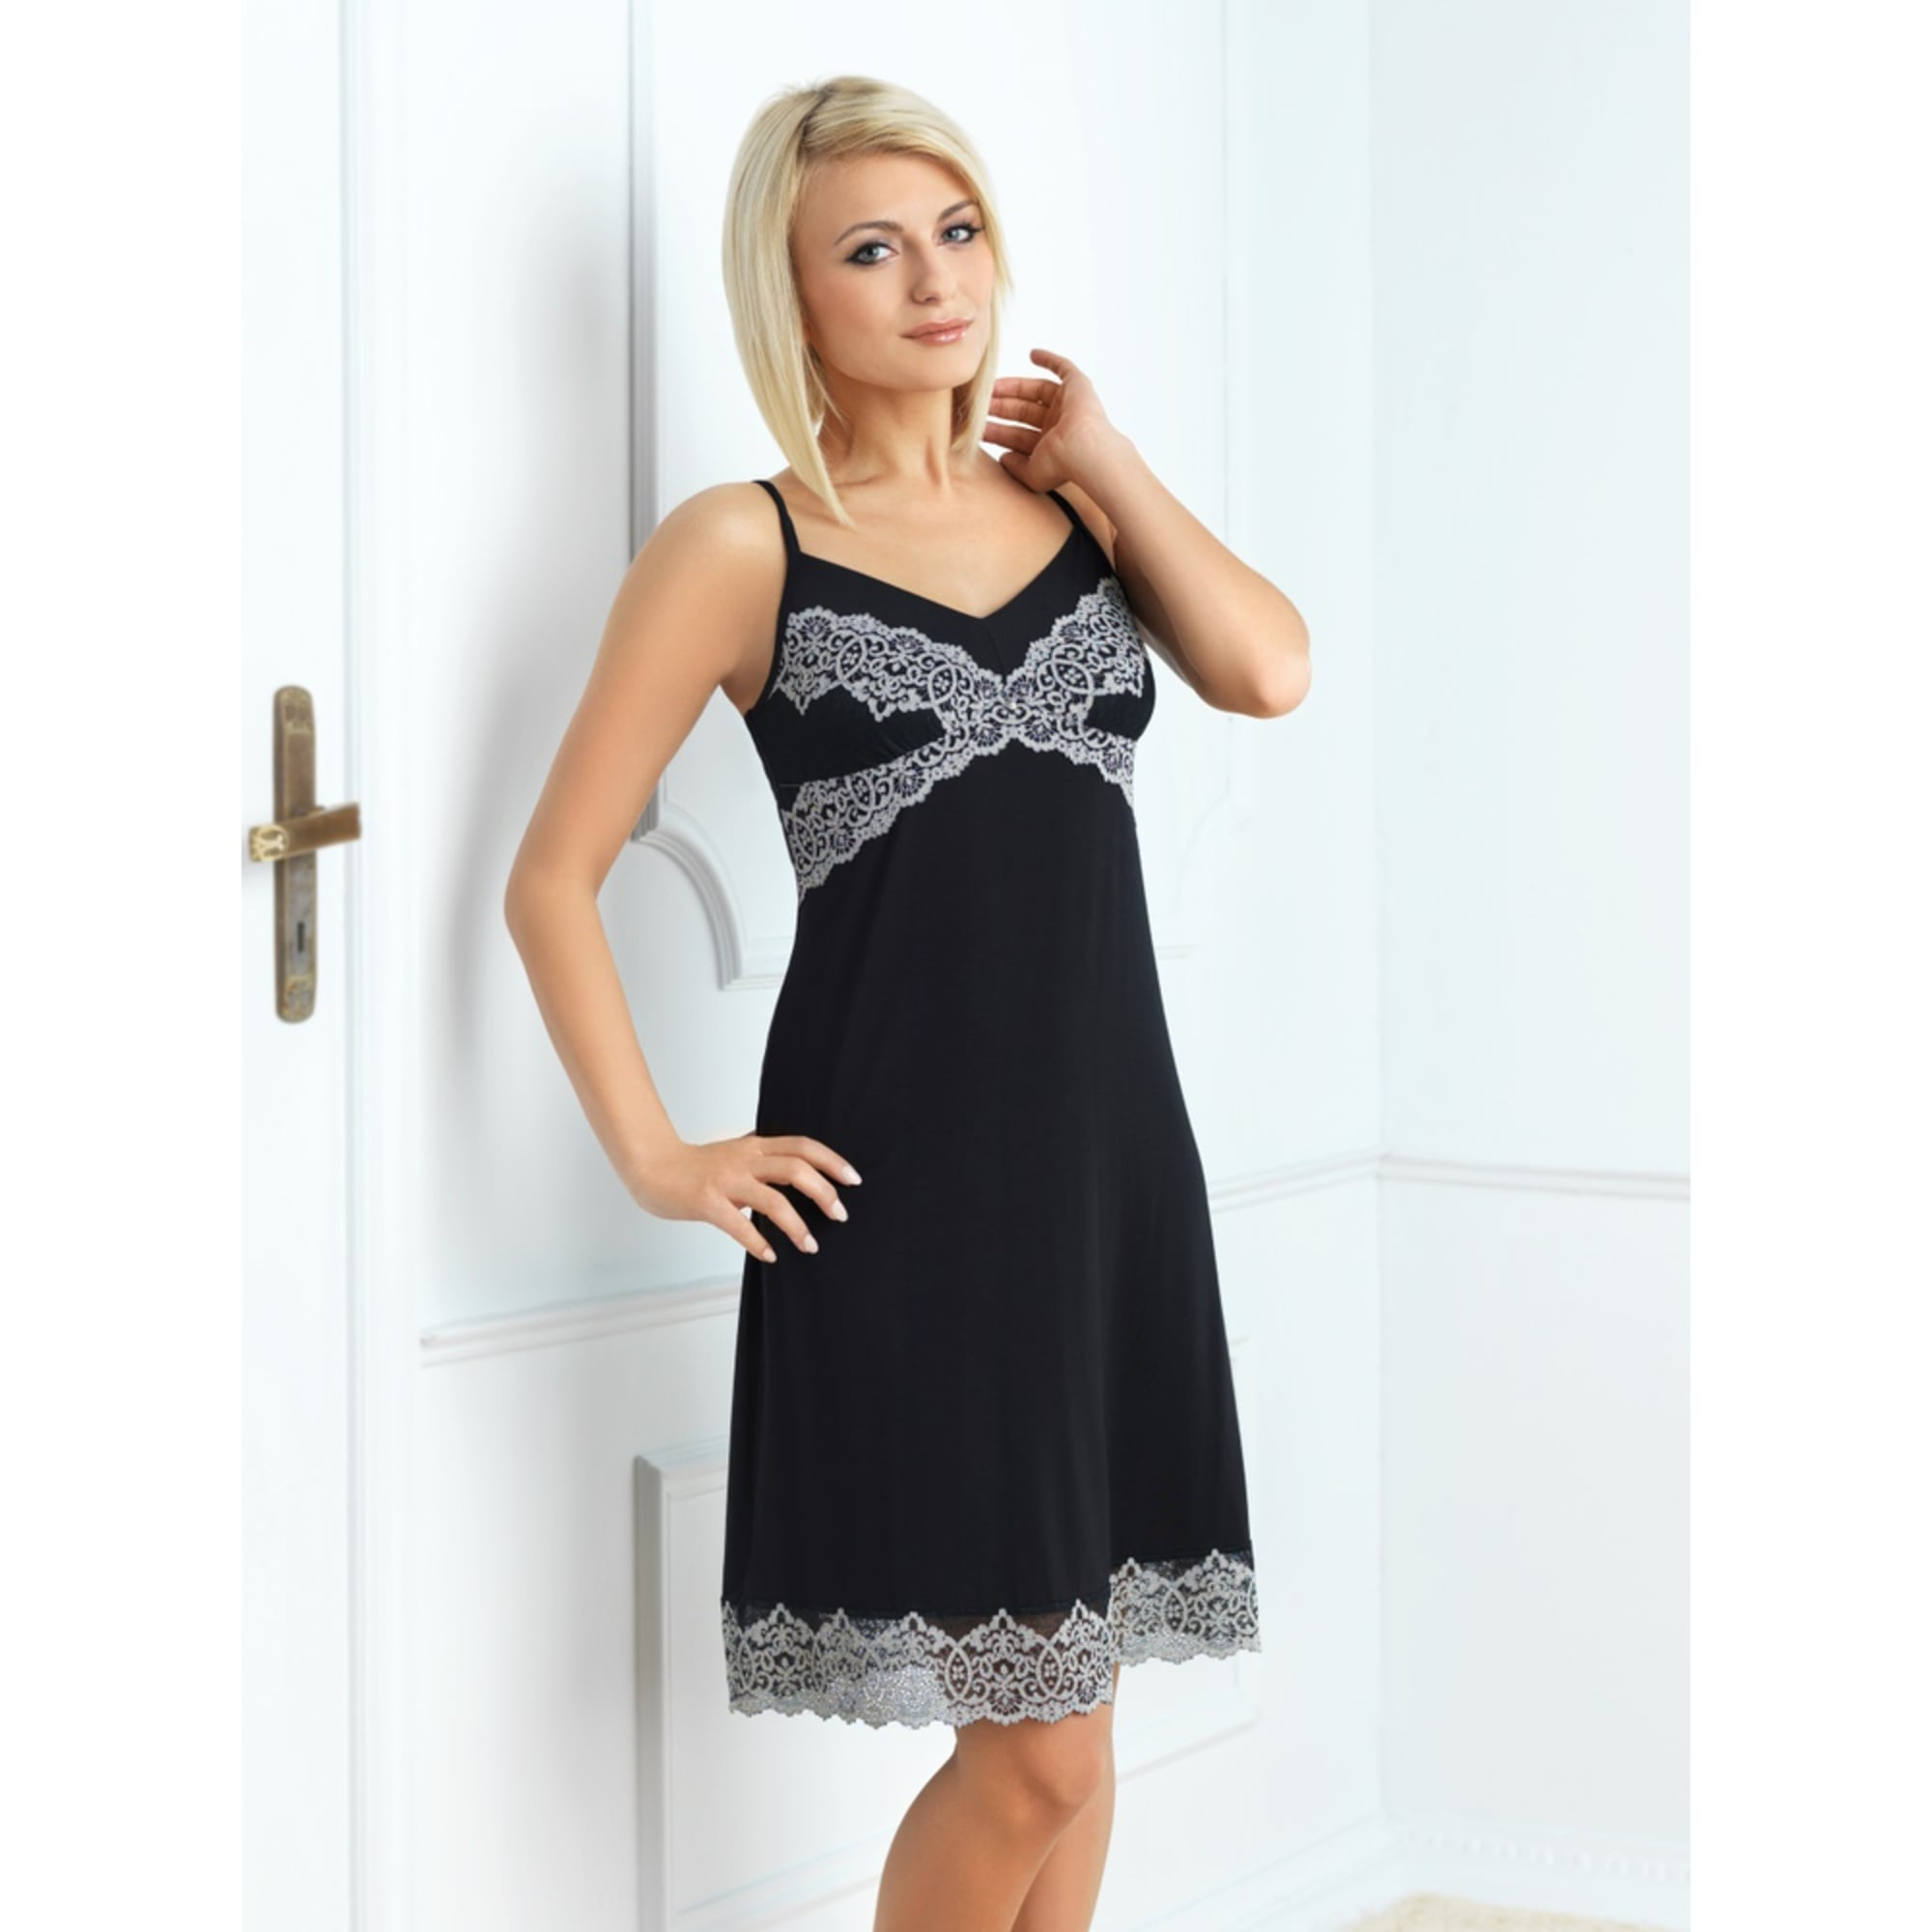 Lace Detail Black Knee Length Nightgown - For Her... from The Luxe ...